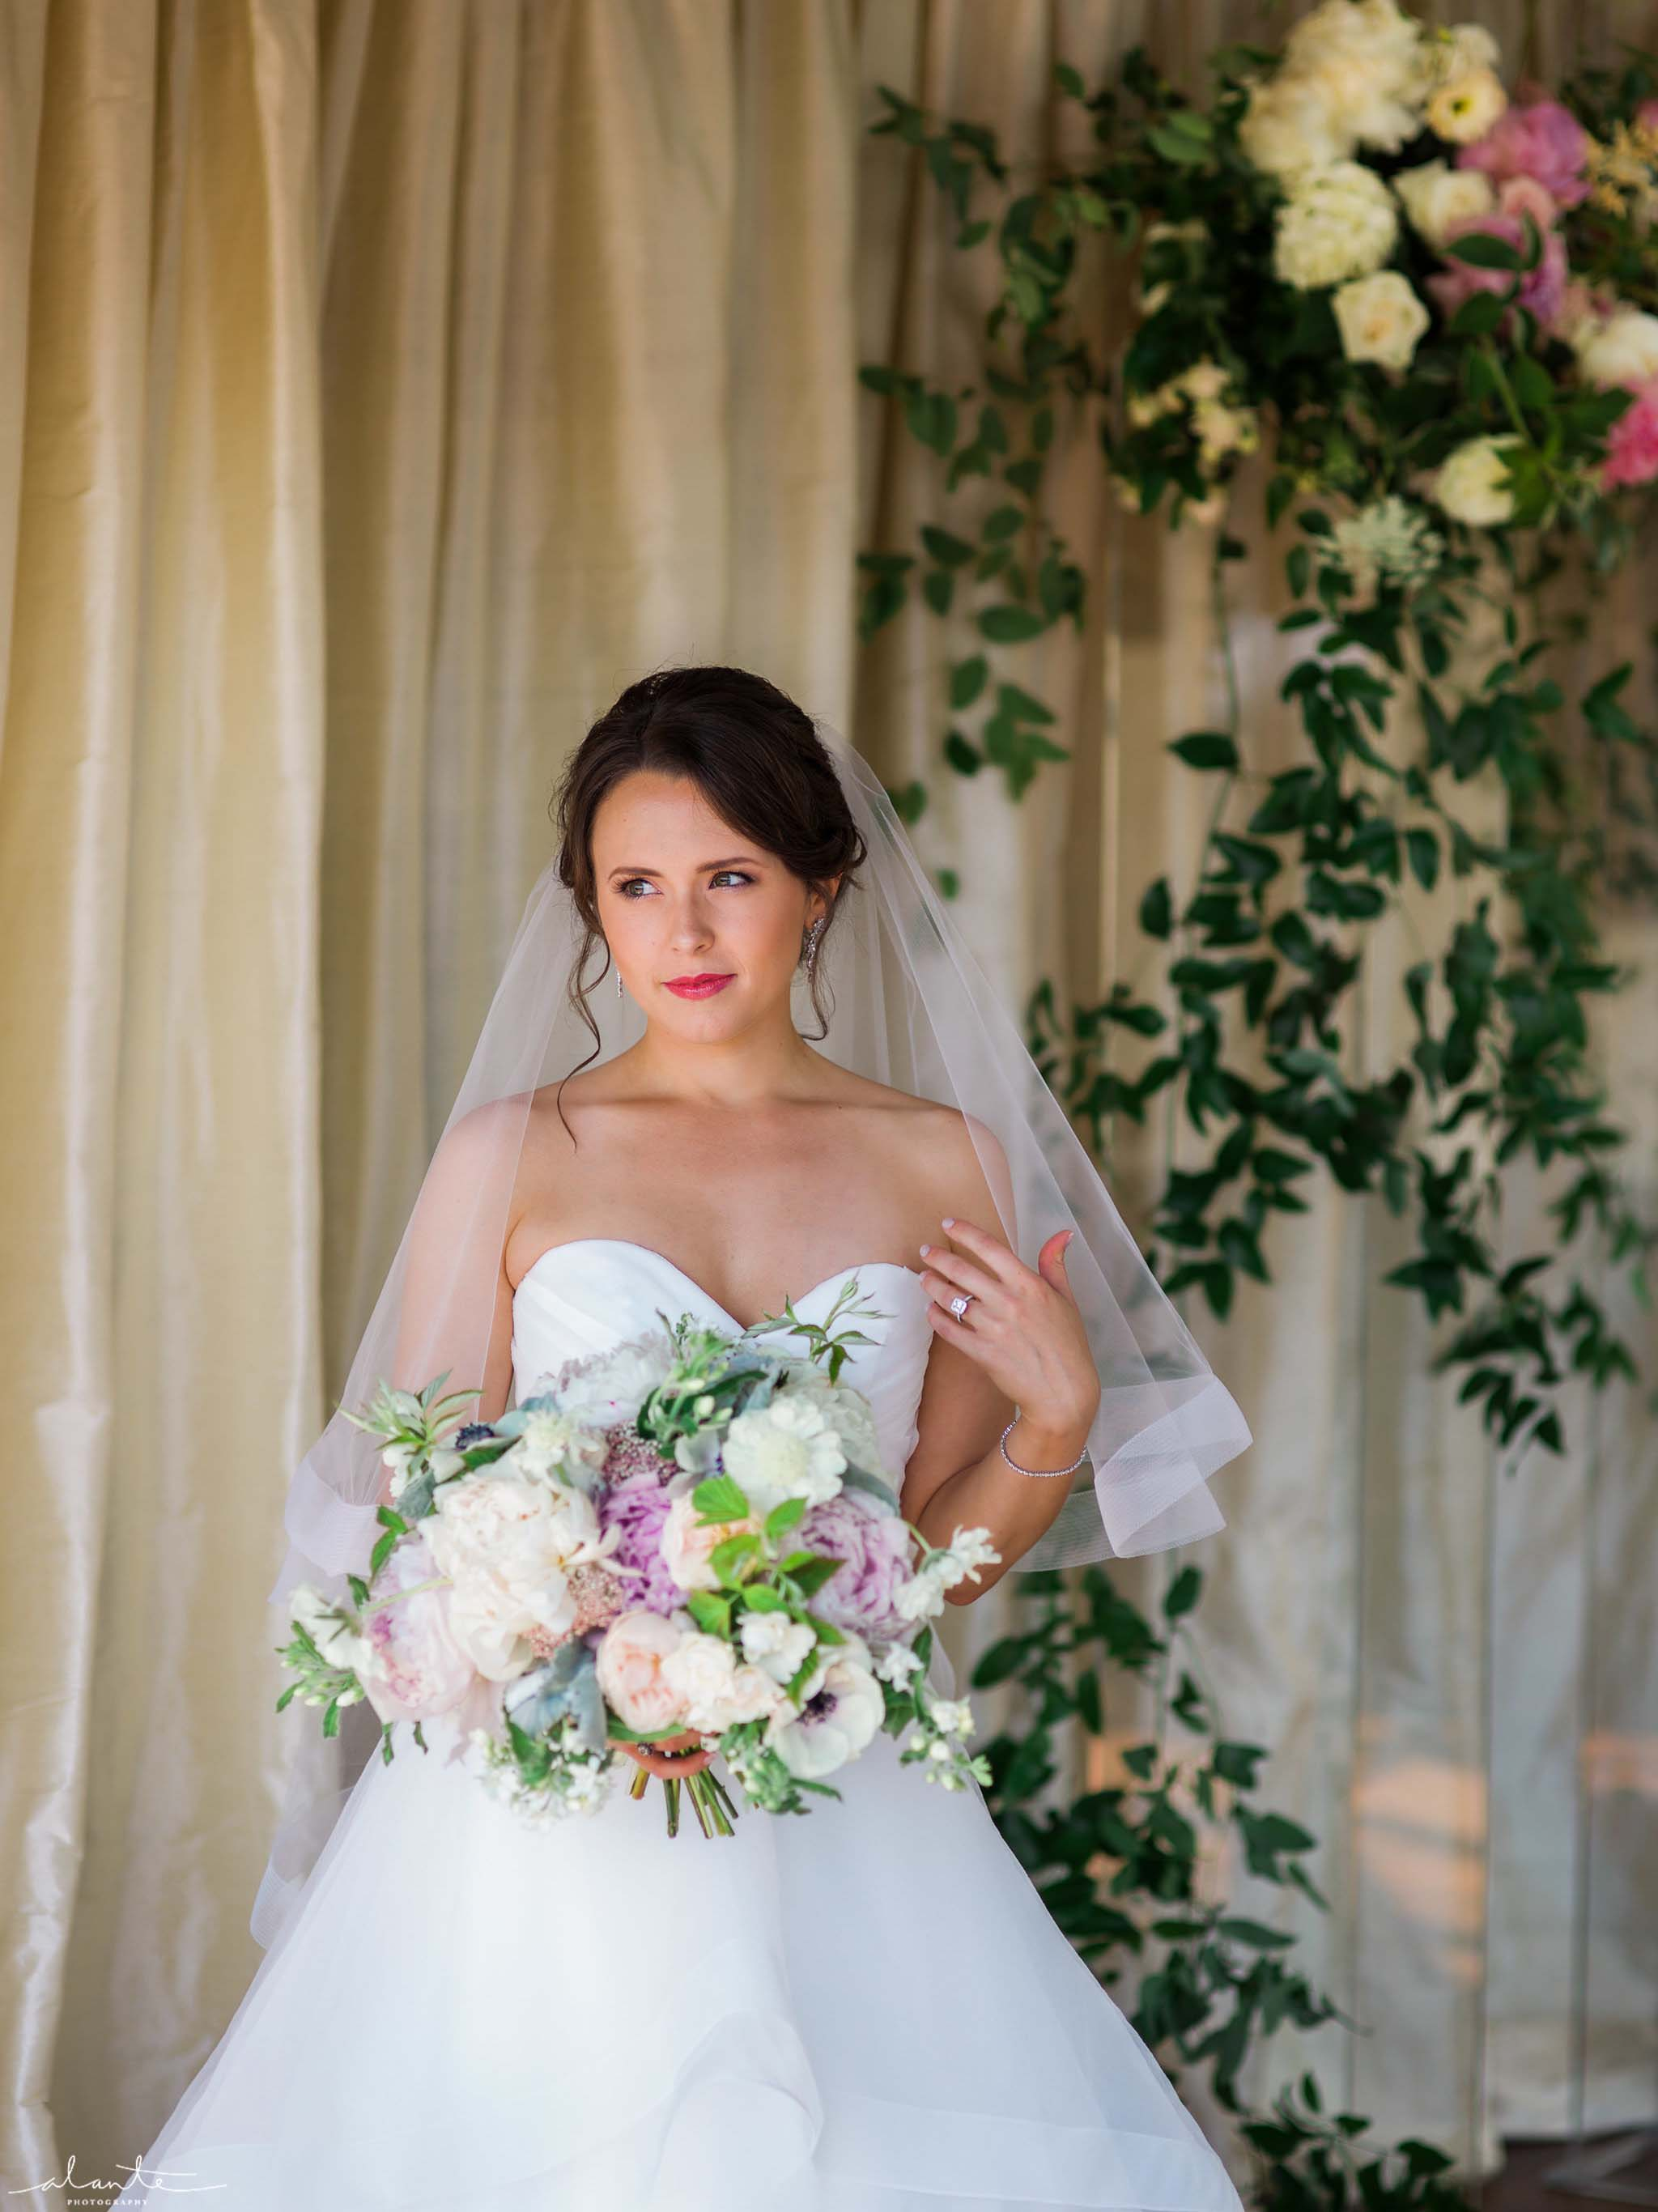 Bride with peony bouquet in front of greenery covered arboc, Olympic Rooftop Pavilion wedding with pink peonies by Flora Nova Design Seattle